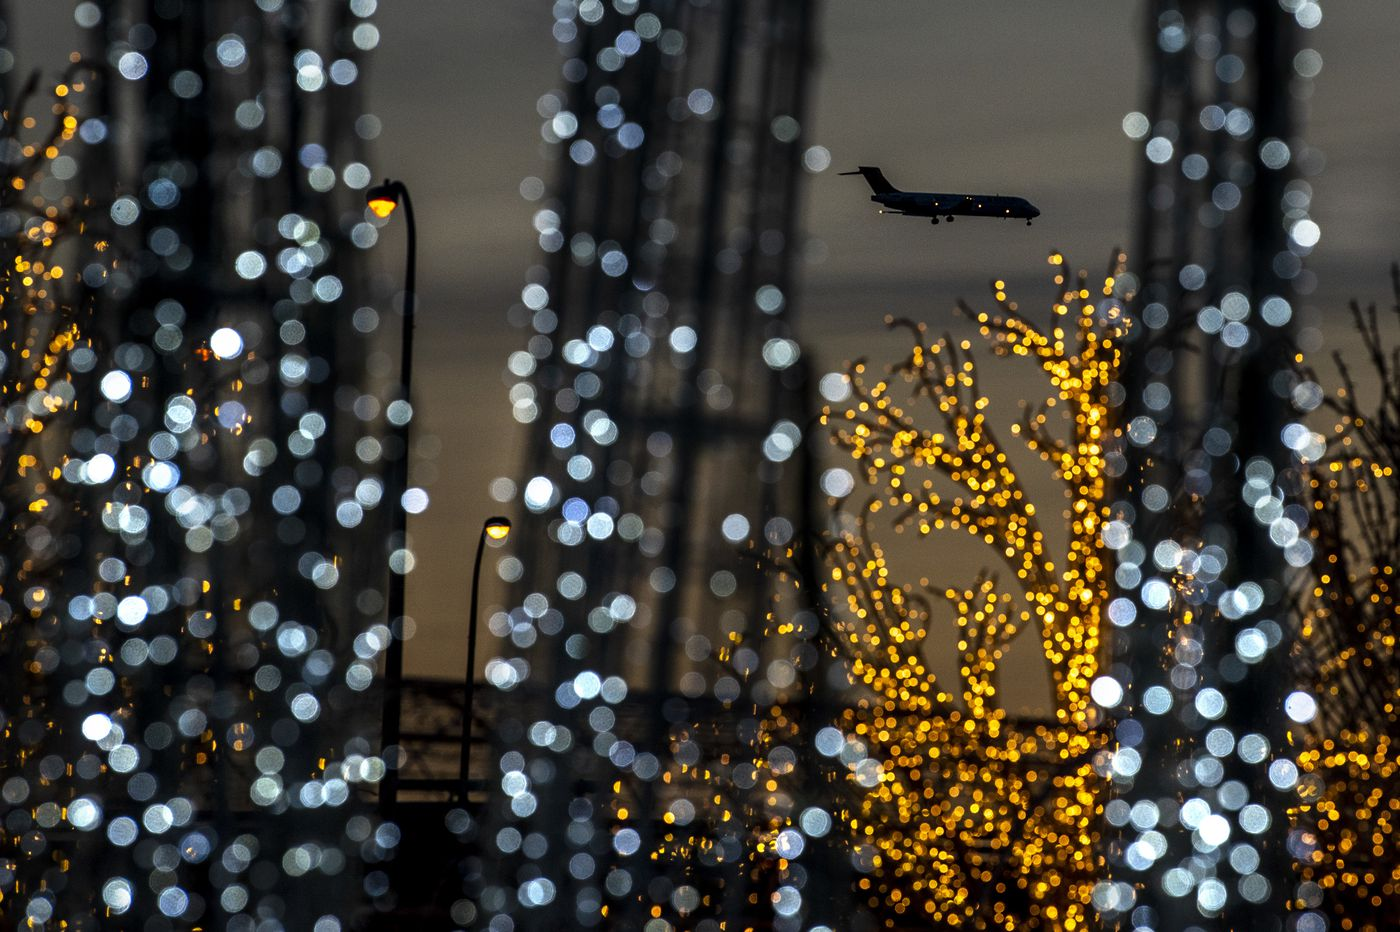 Philadelphia Airport prepares for a bump in holiday travelers over Christmas week